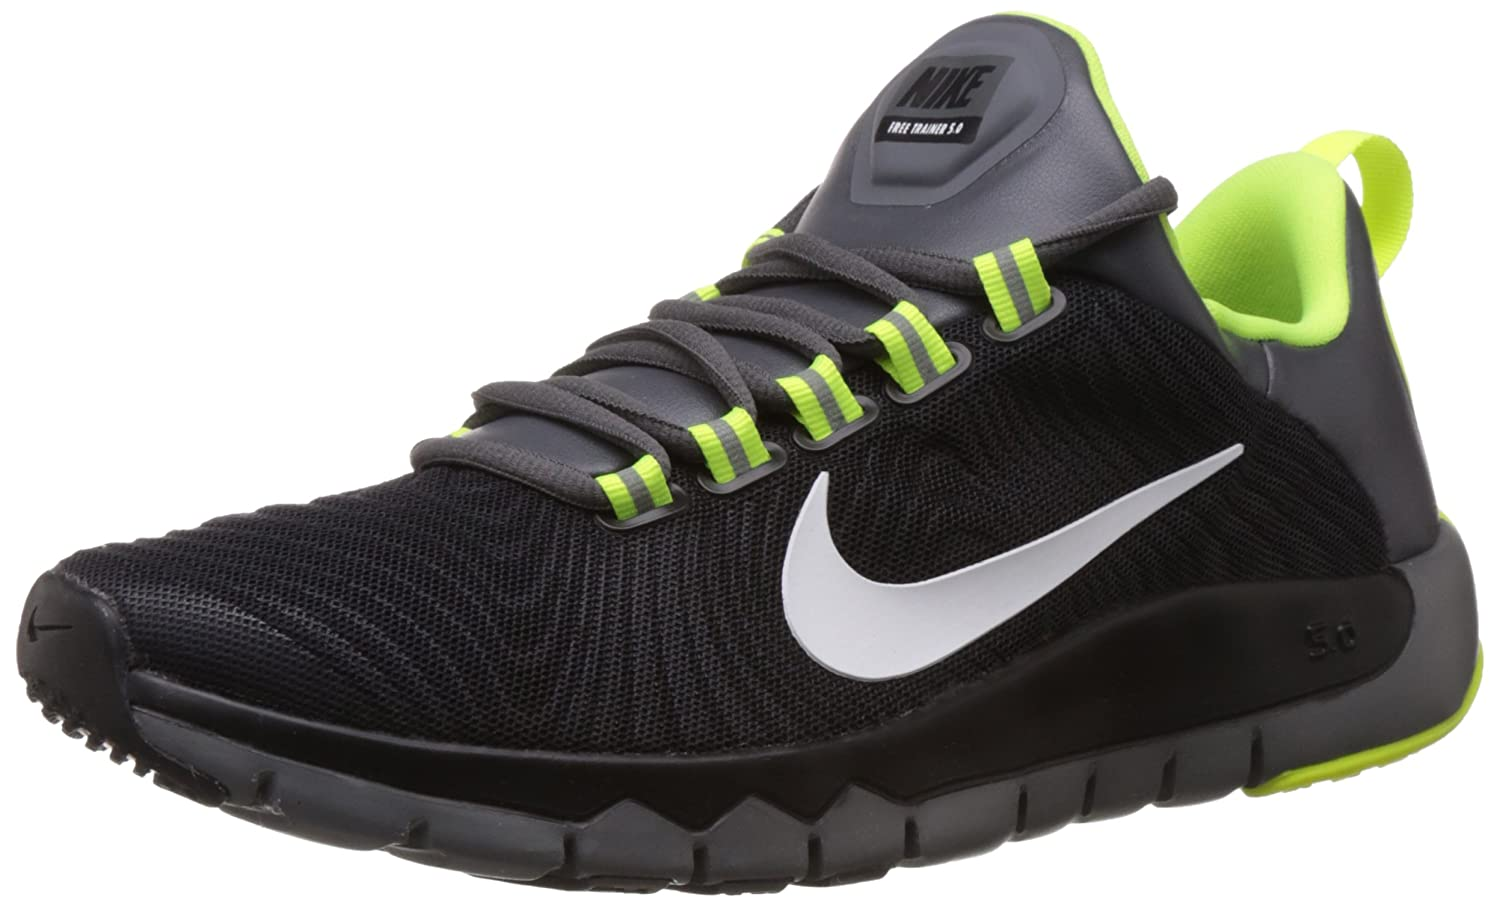 nike mens free trainers 3.0 - magnet grey\/black screen